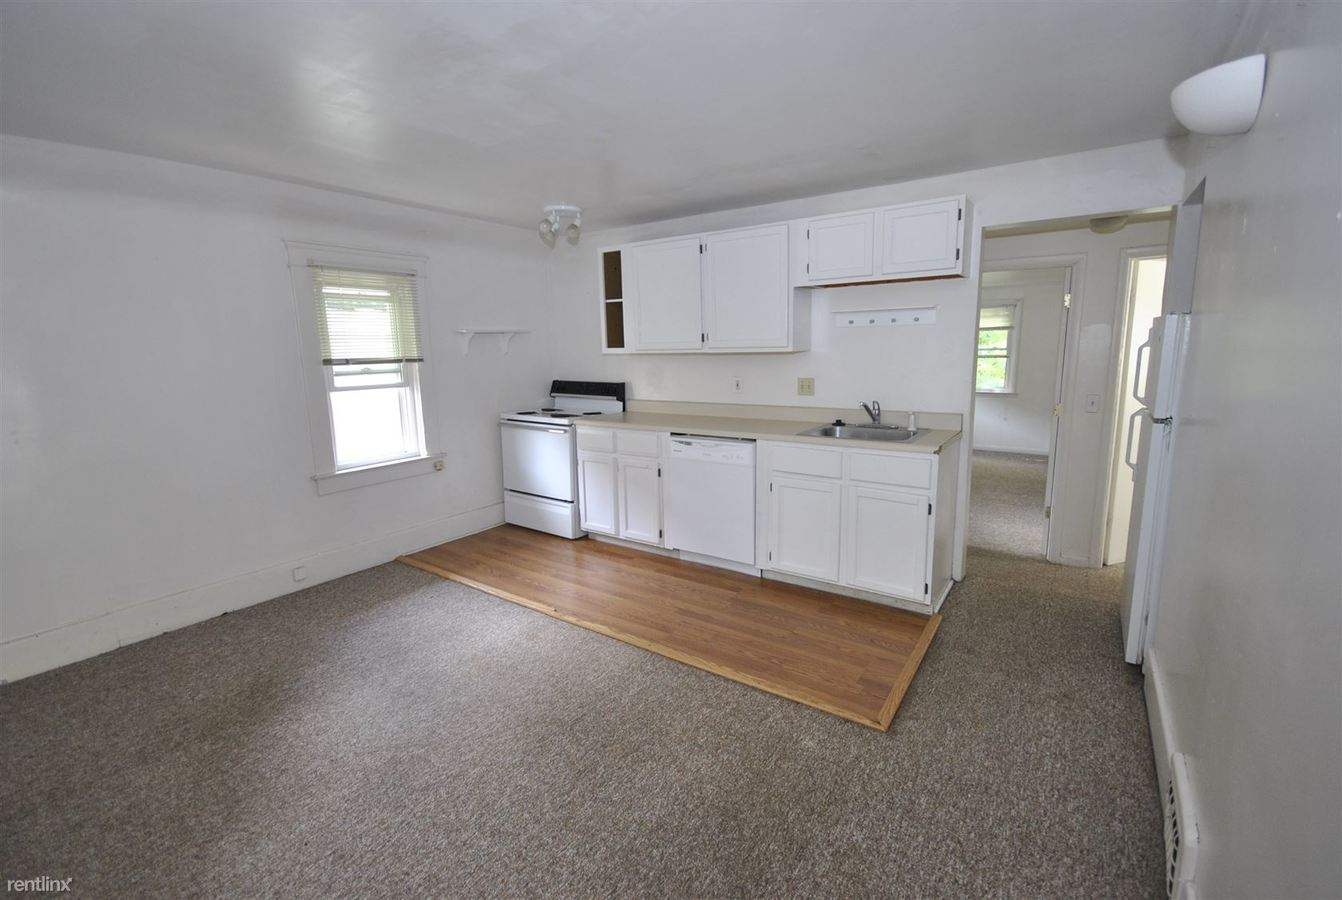 4 Bedrooms 1 Bathroom Apartment for rent at 912 Sybil St in Ann Arbor, MI